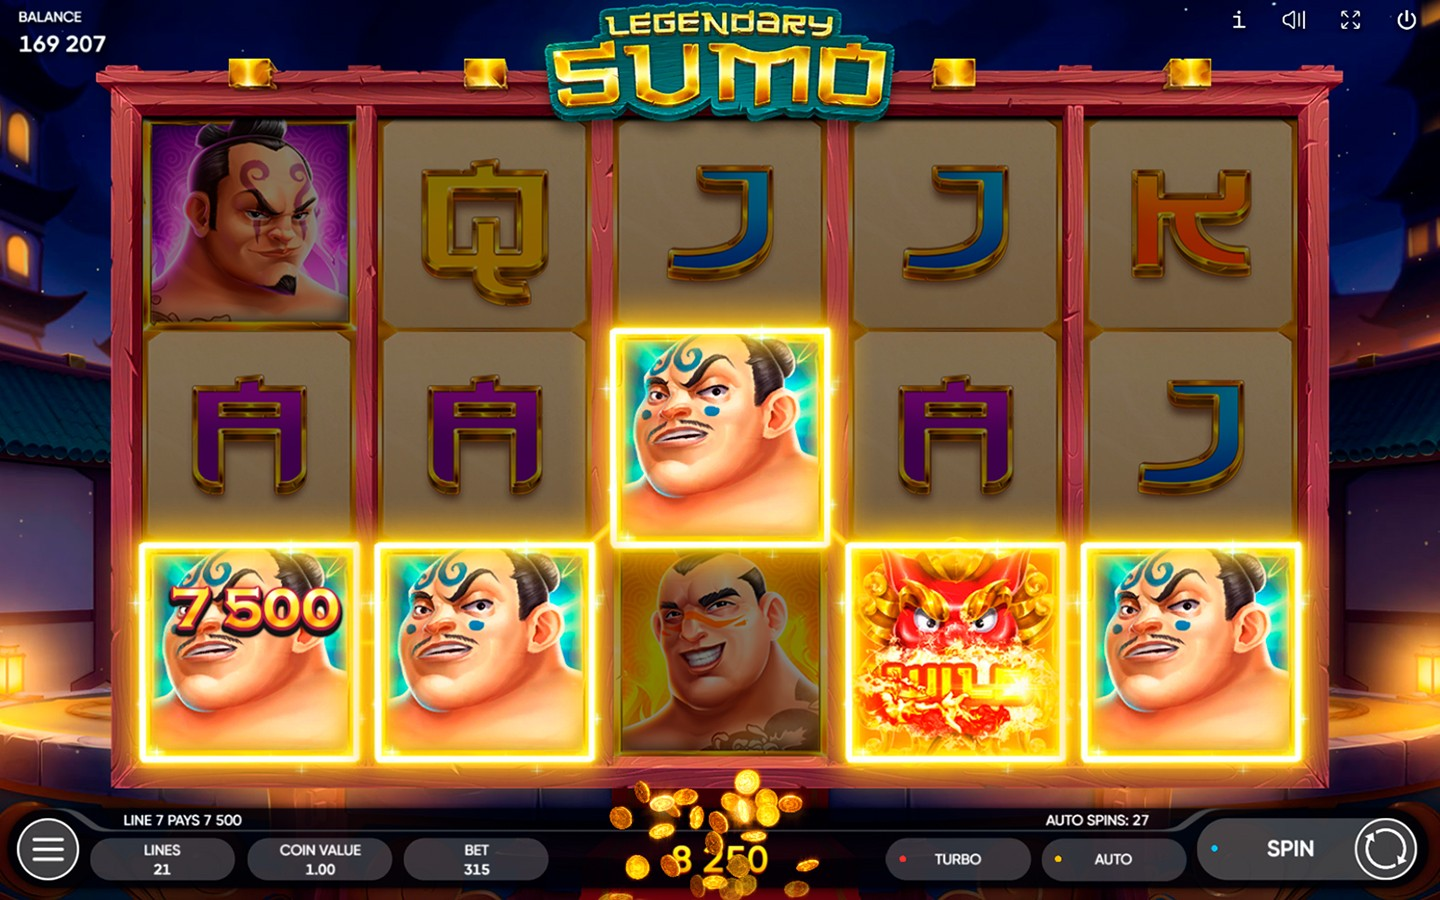 CASINO SLOT PROVIDER | Legendary Sumo slot is out!